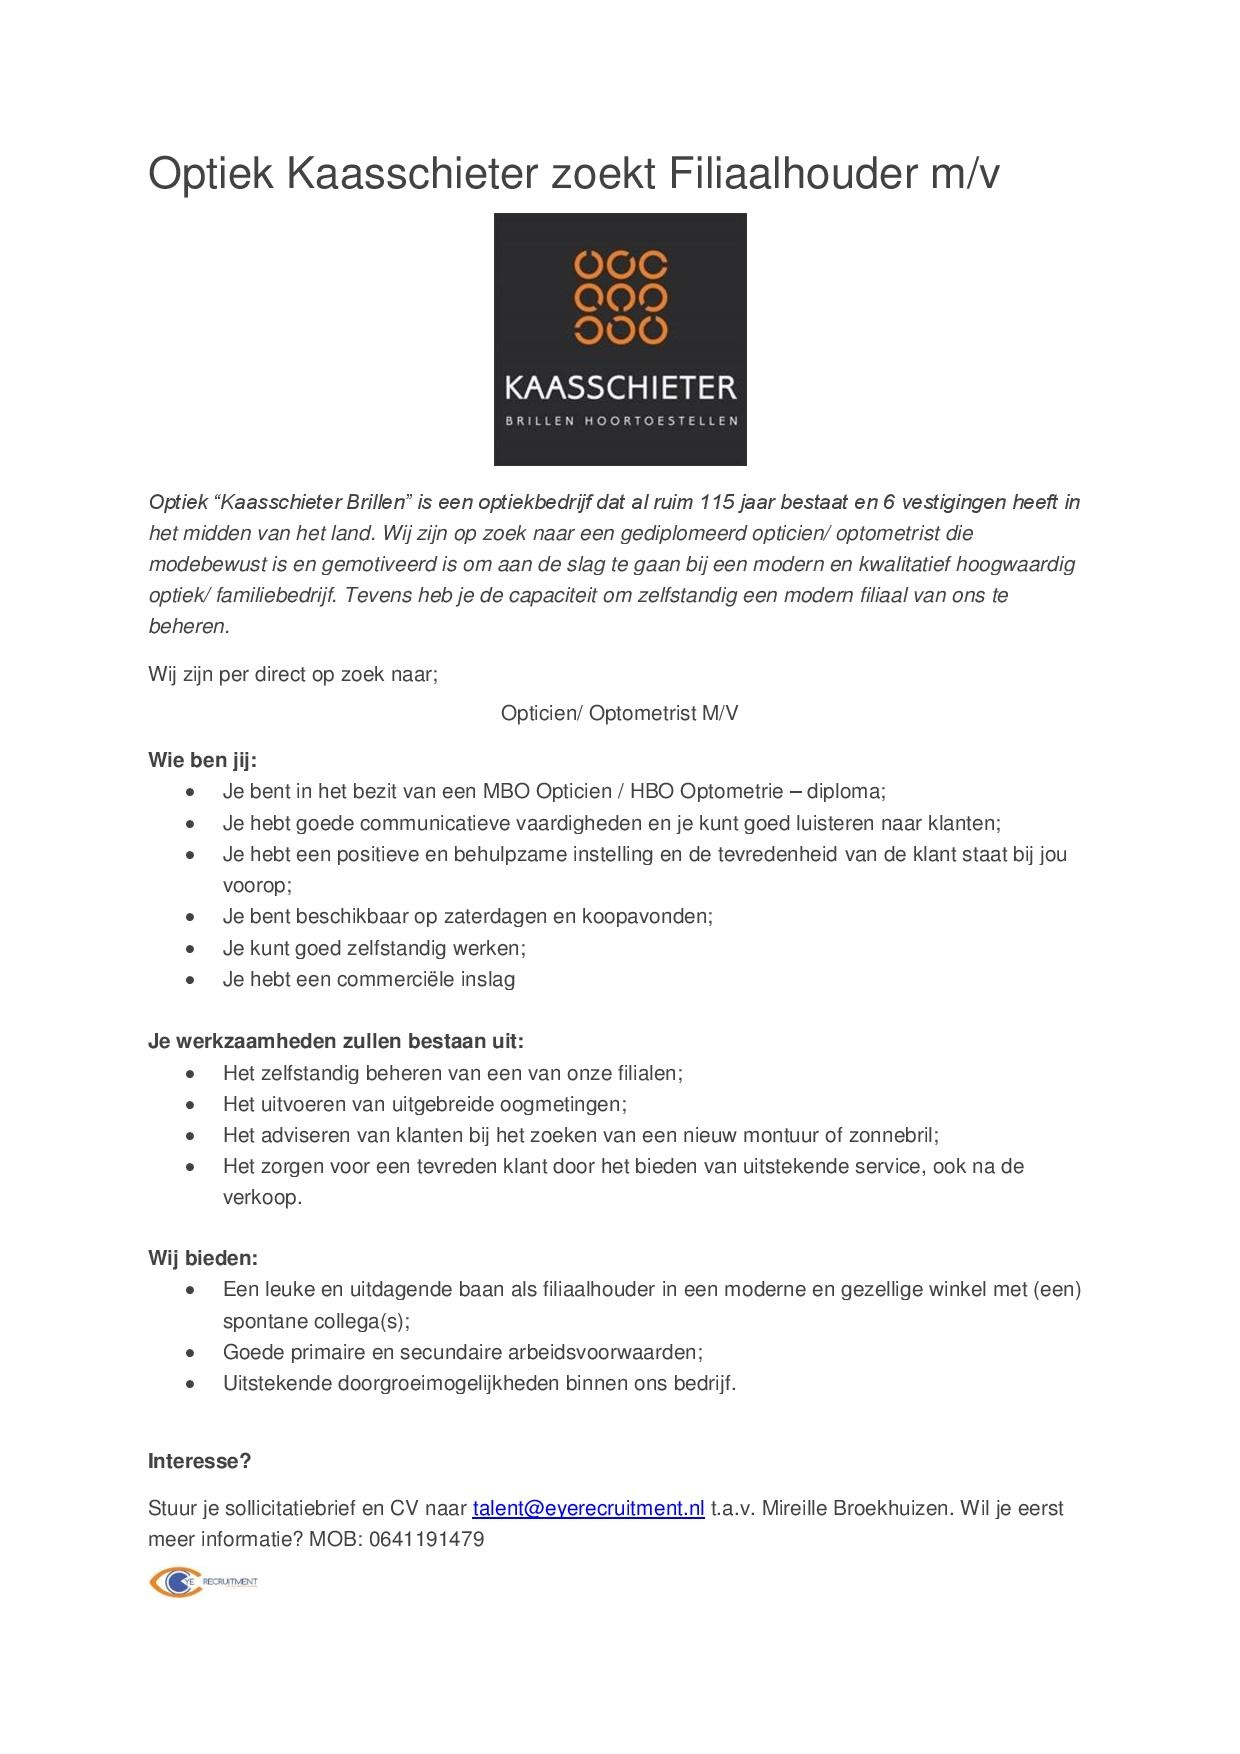 vacature opticien optometrist kaasschieter brillen-page-001